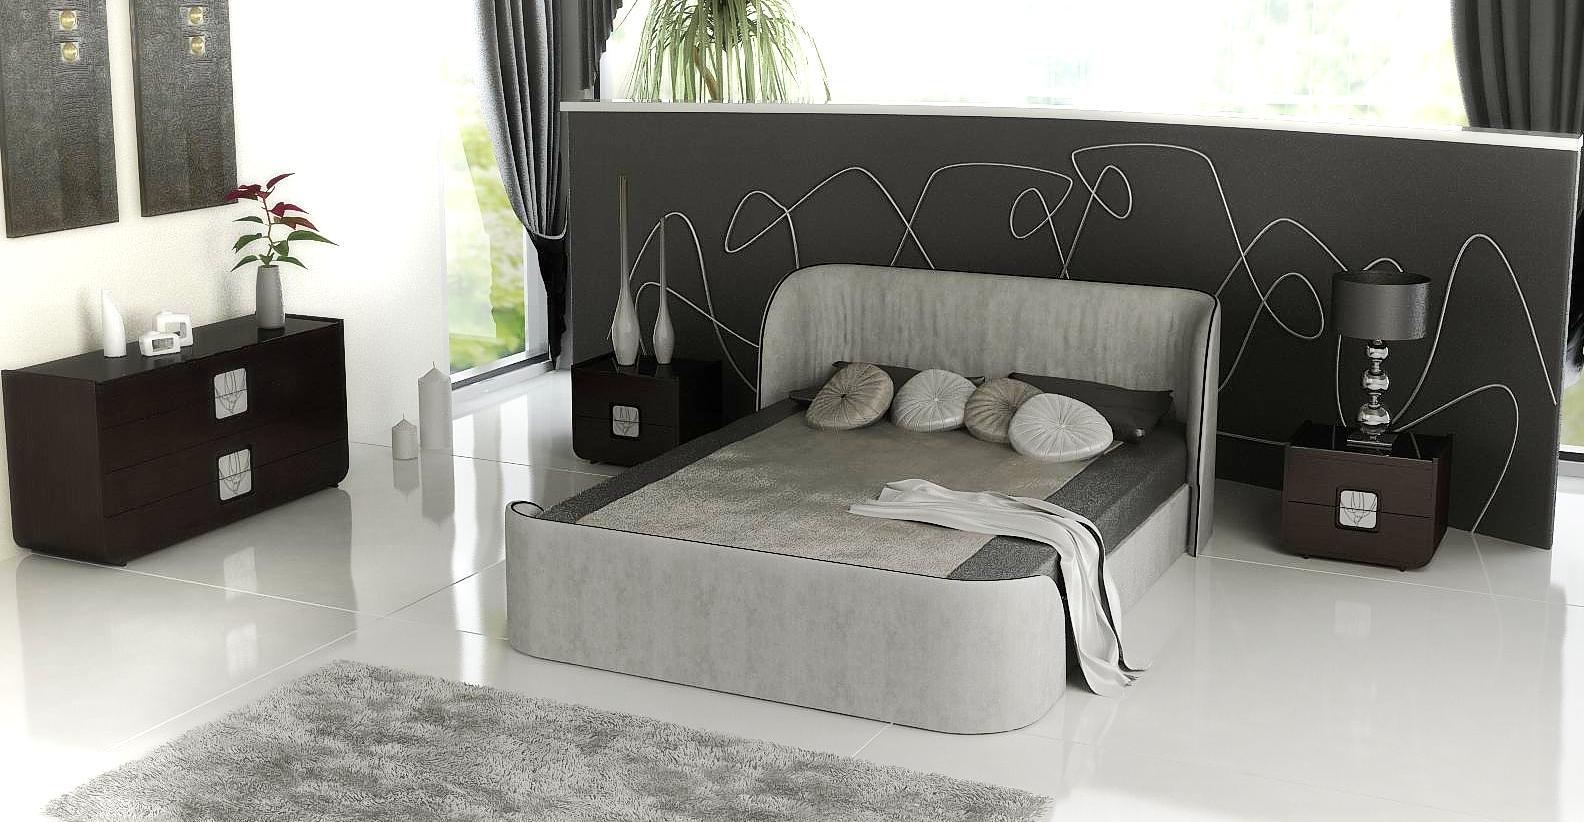 ensemble pour chambre coucher design 1 0 1000 0 pi ces. Black Bedroom Furniture Sets. Home Design Ideas